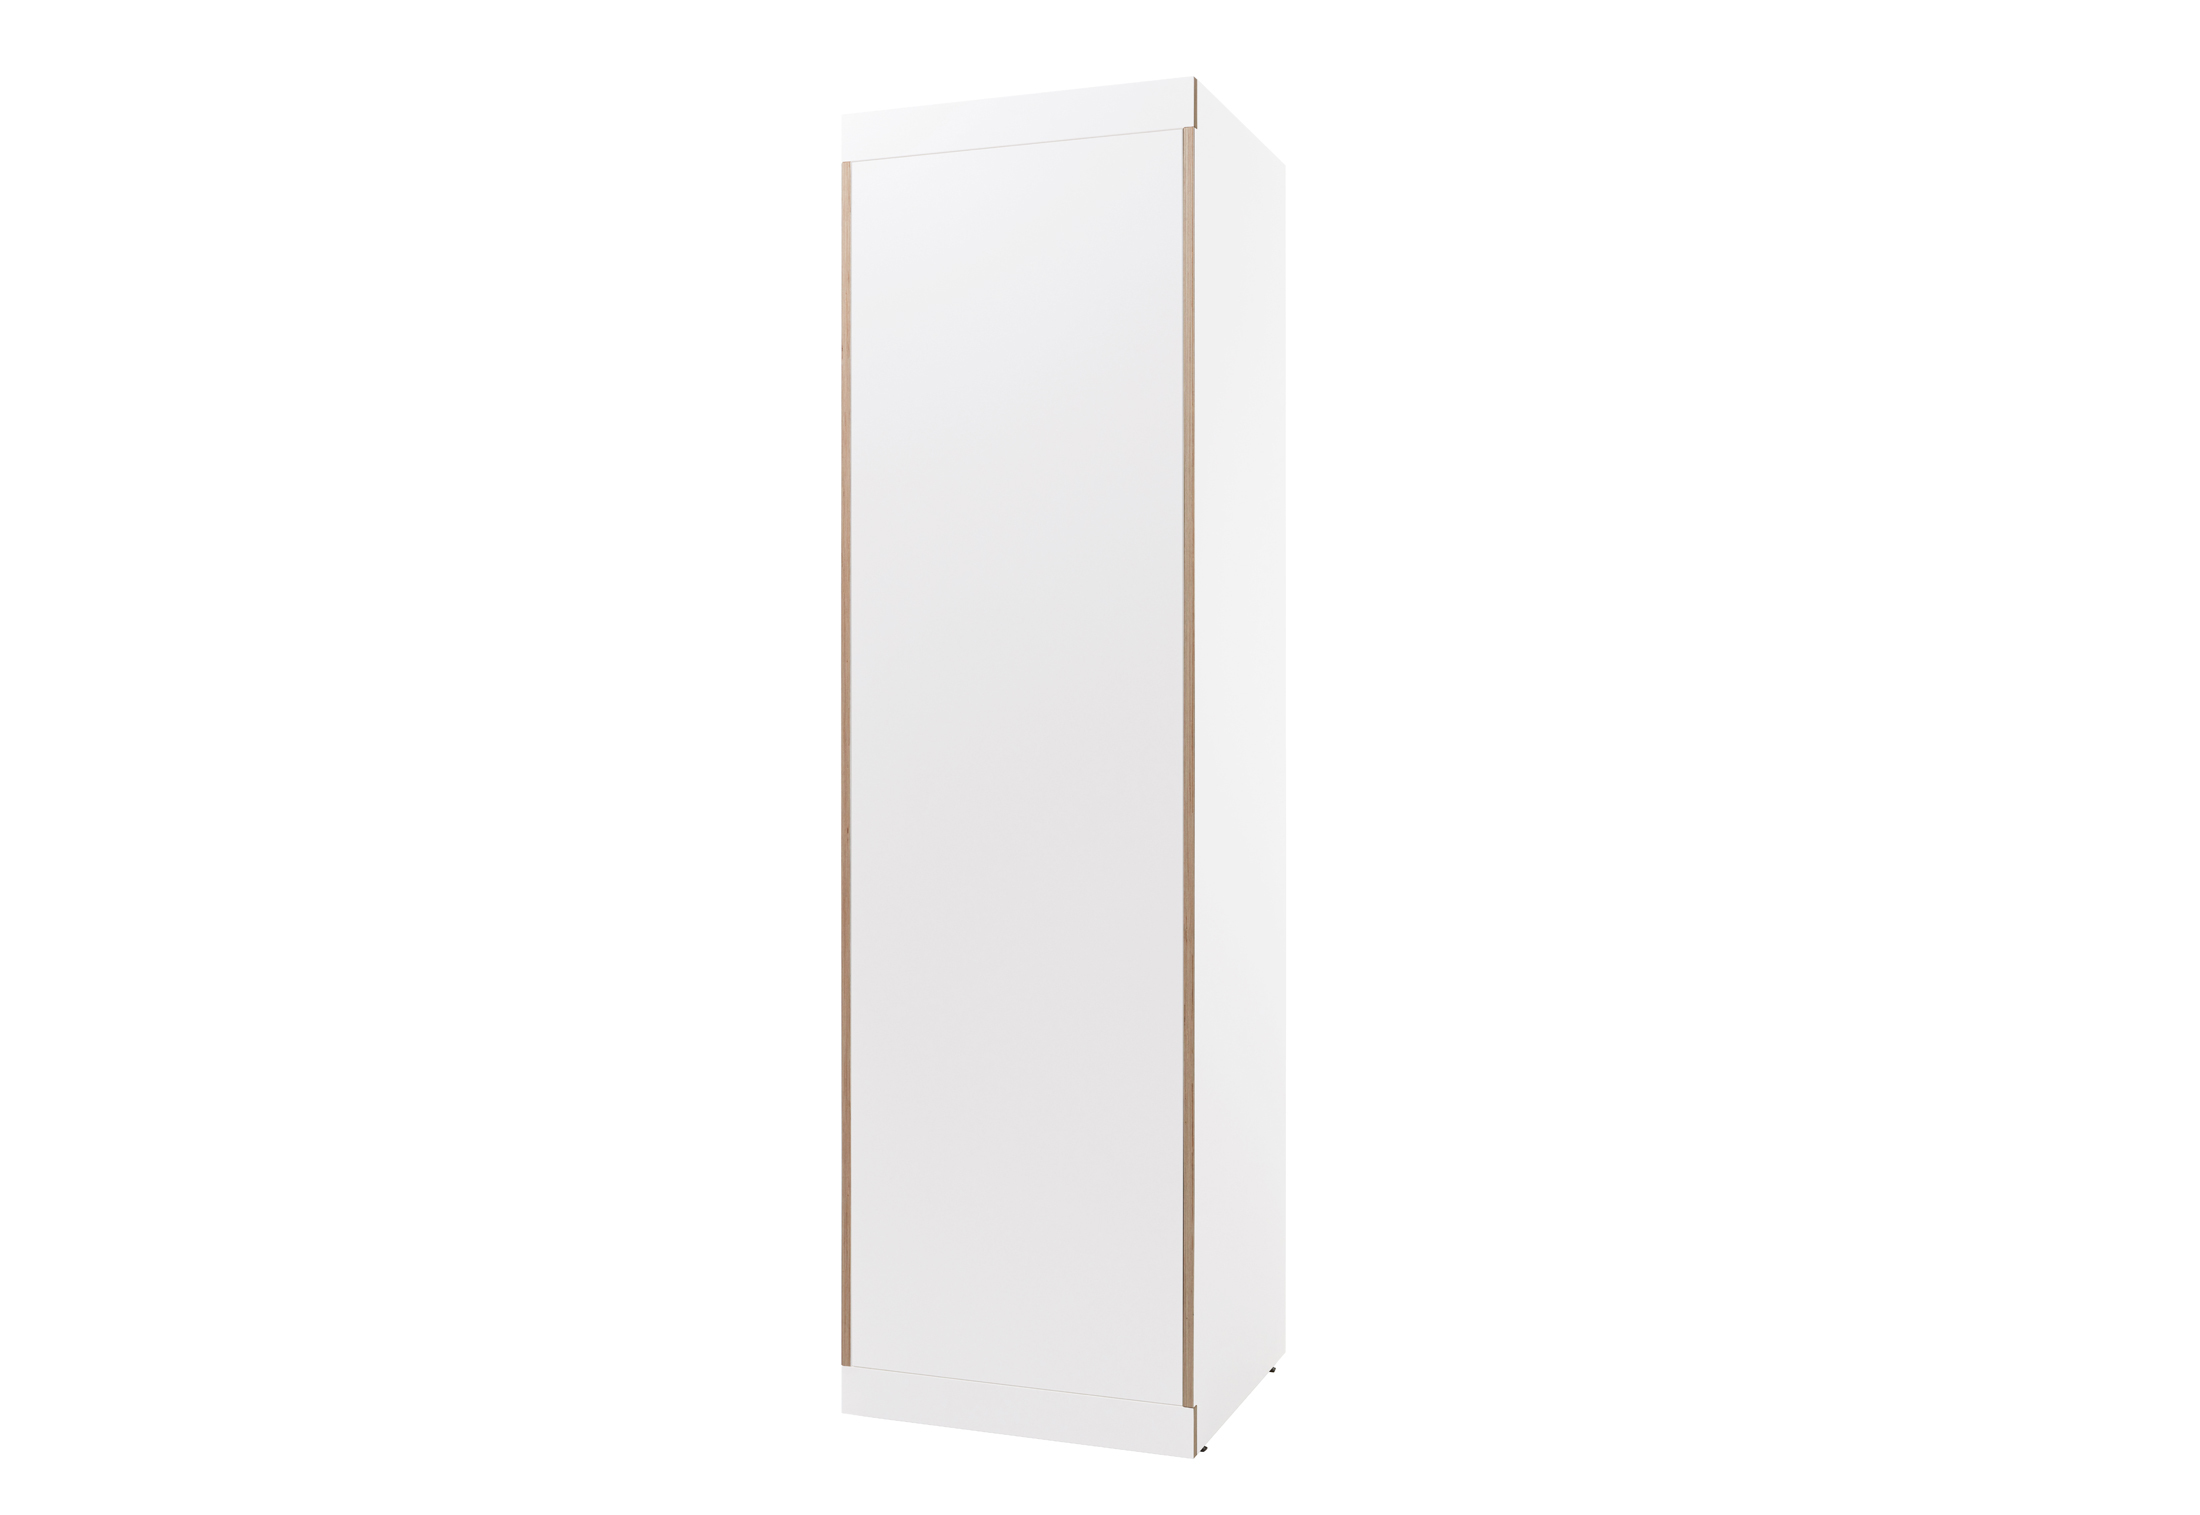 sale online shopping product single godrej steel wardrobe almirah door detail for